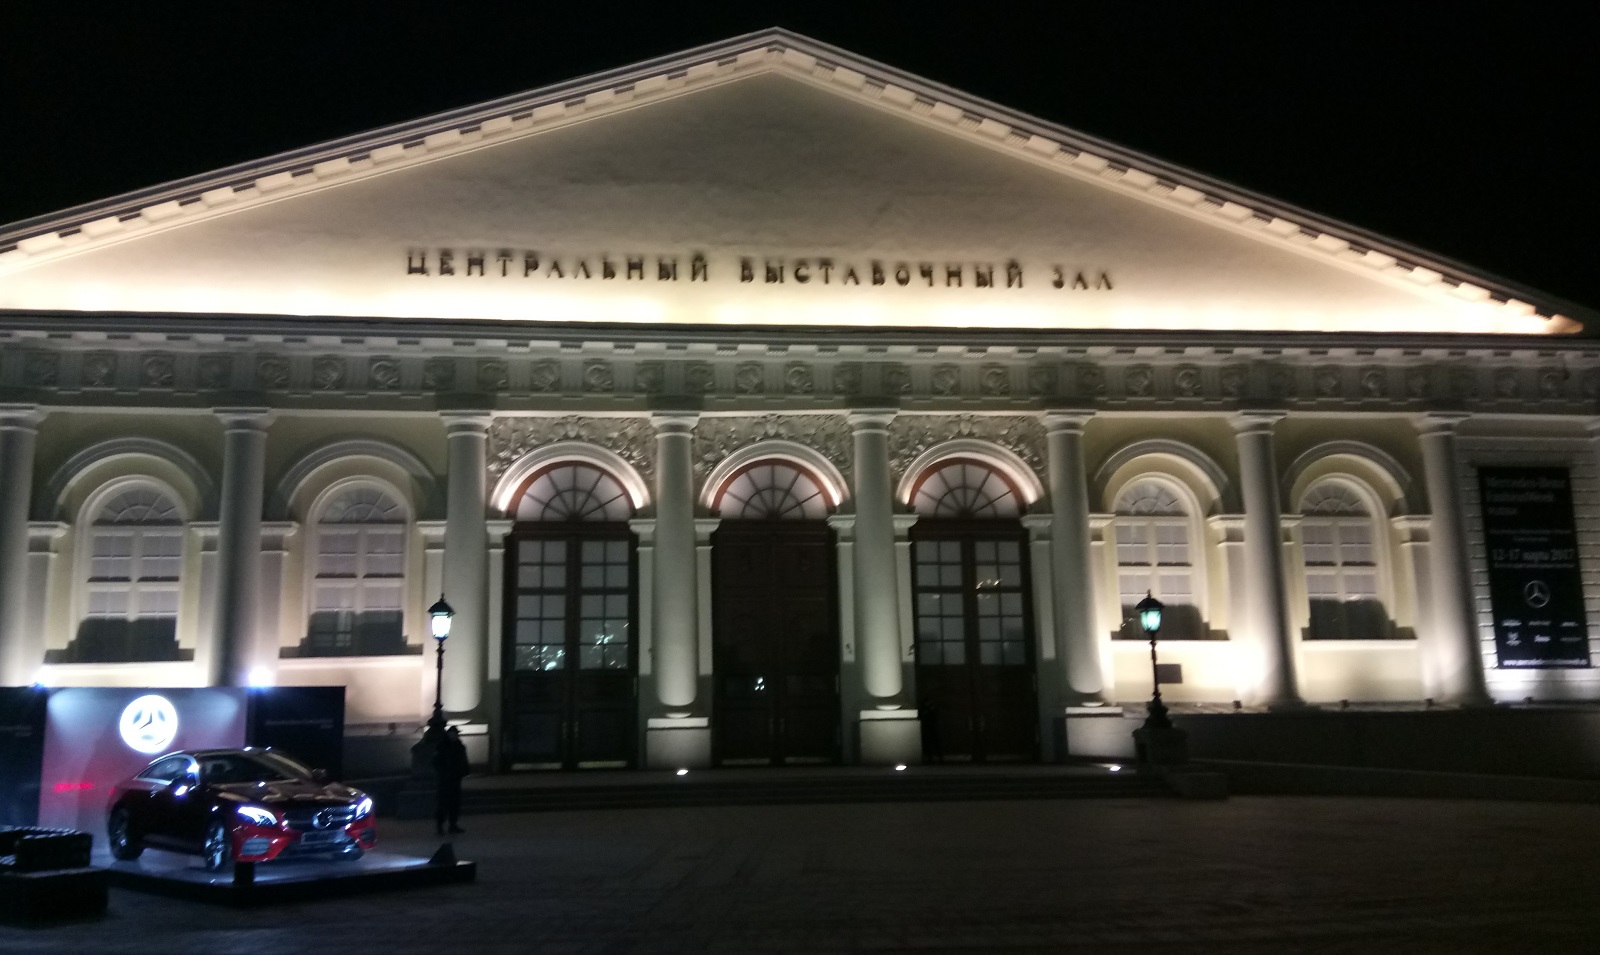 Central Exhibition Hall Moscow